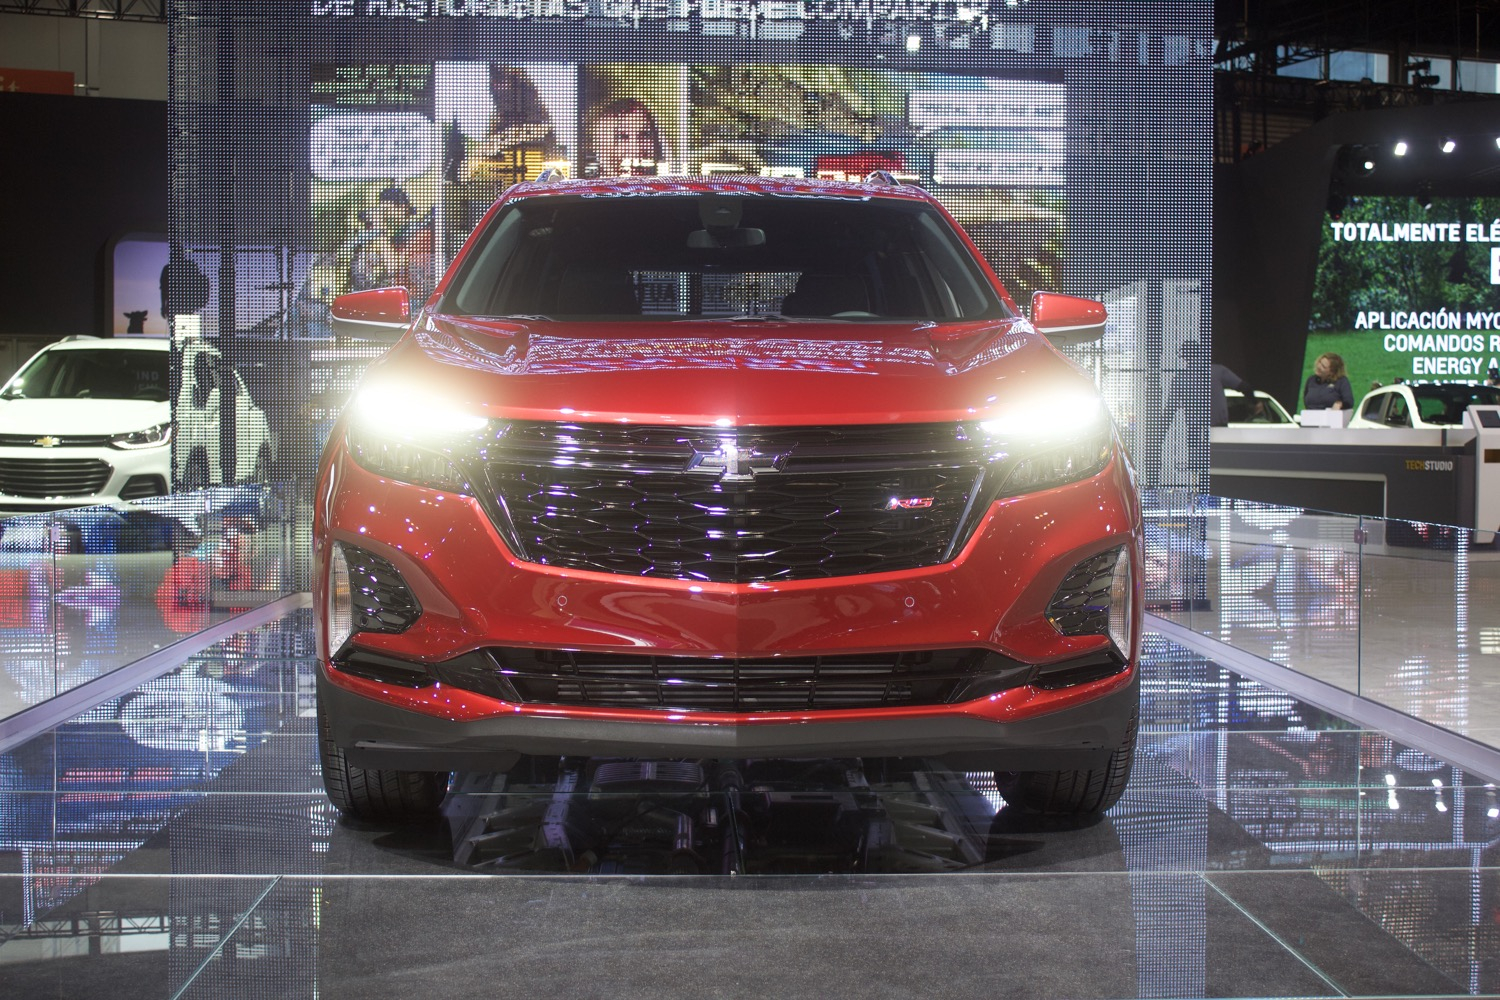 2021 Chevrolet Equinox Rs: Live Photo Gallery | Gm Authority 2021 Chevrolet Equinox Lt Towing Capacity, 6 Cylinder, Seat Covers